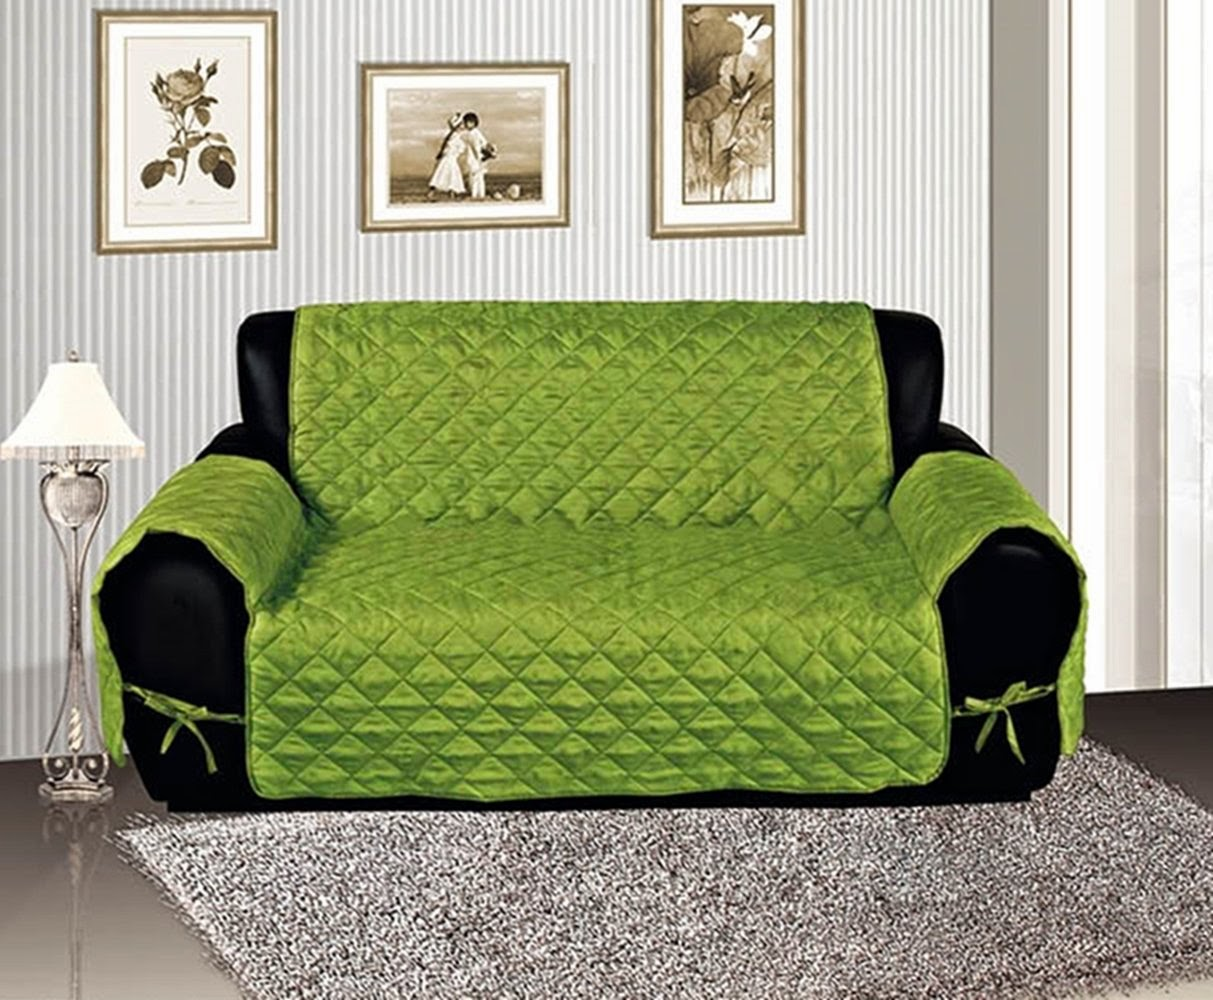 Green Dog Couch Cover